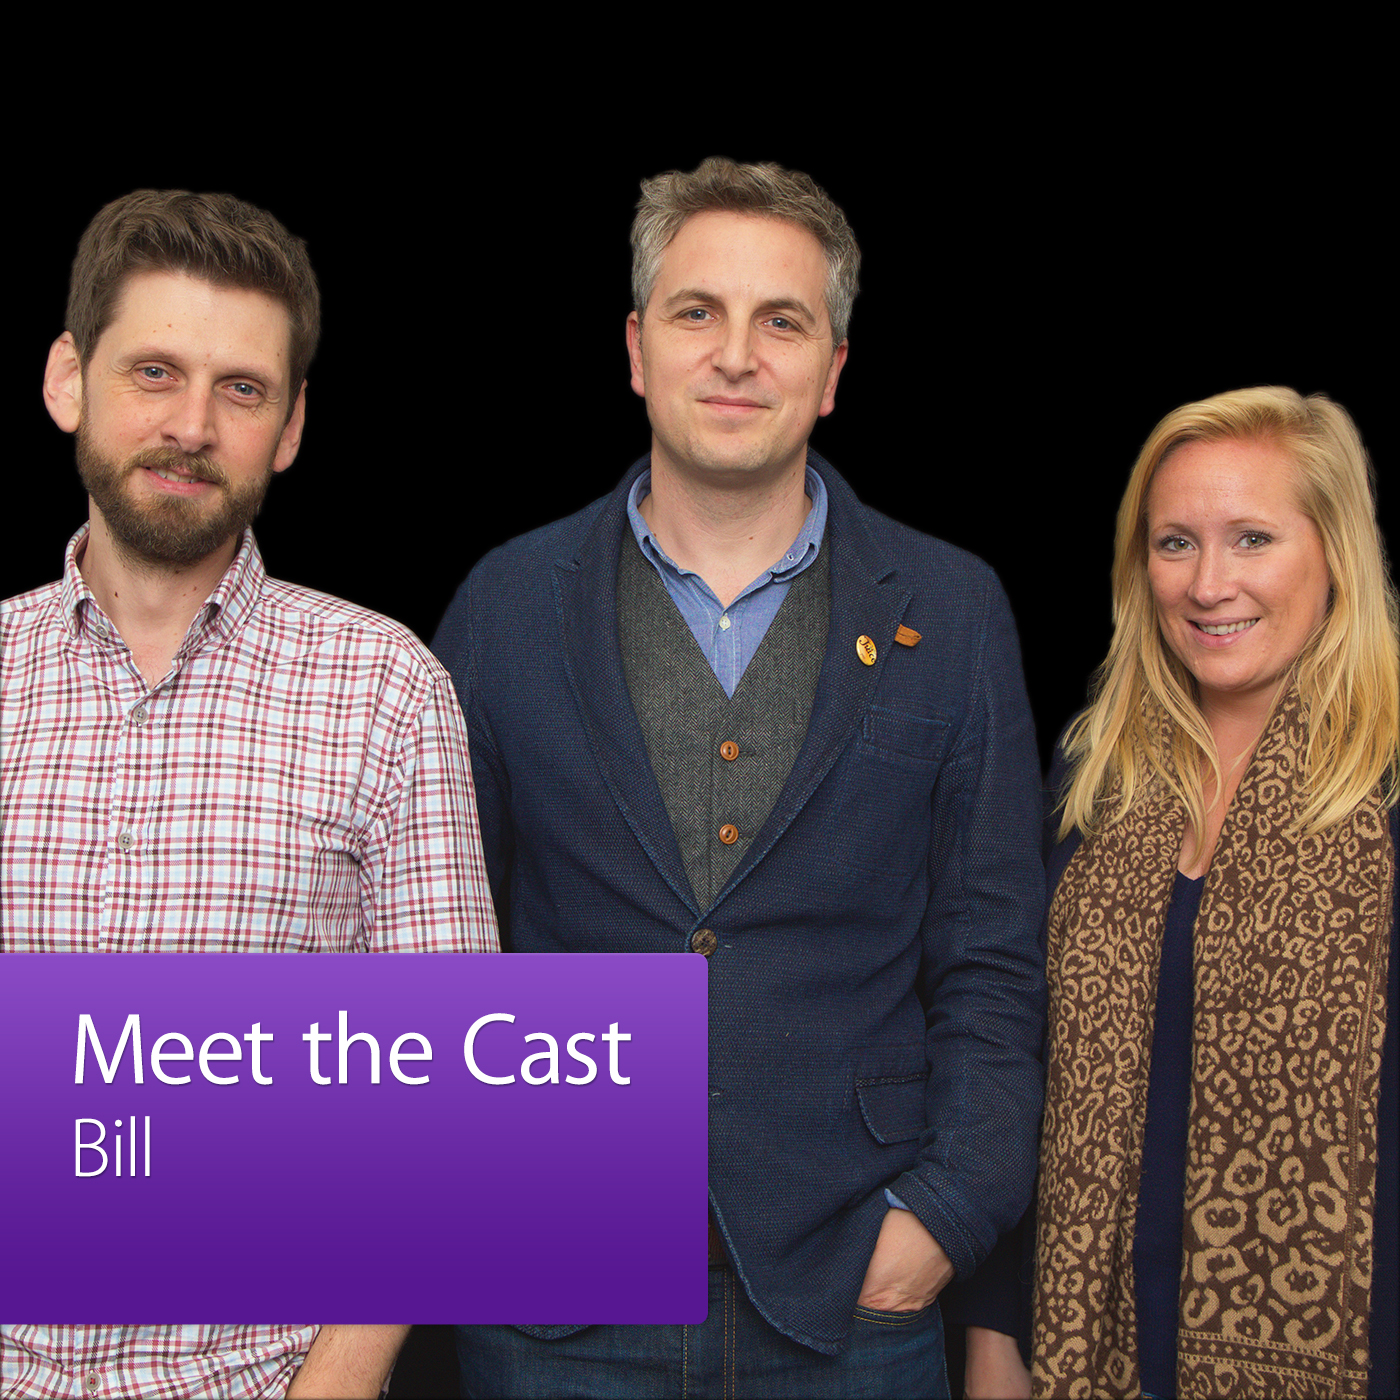 Bill: Meet the Cast